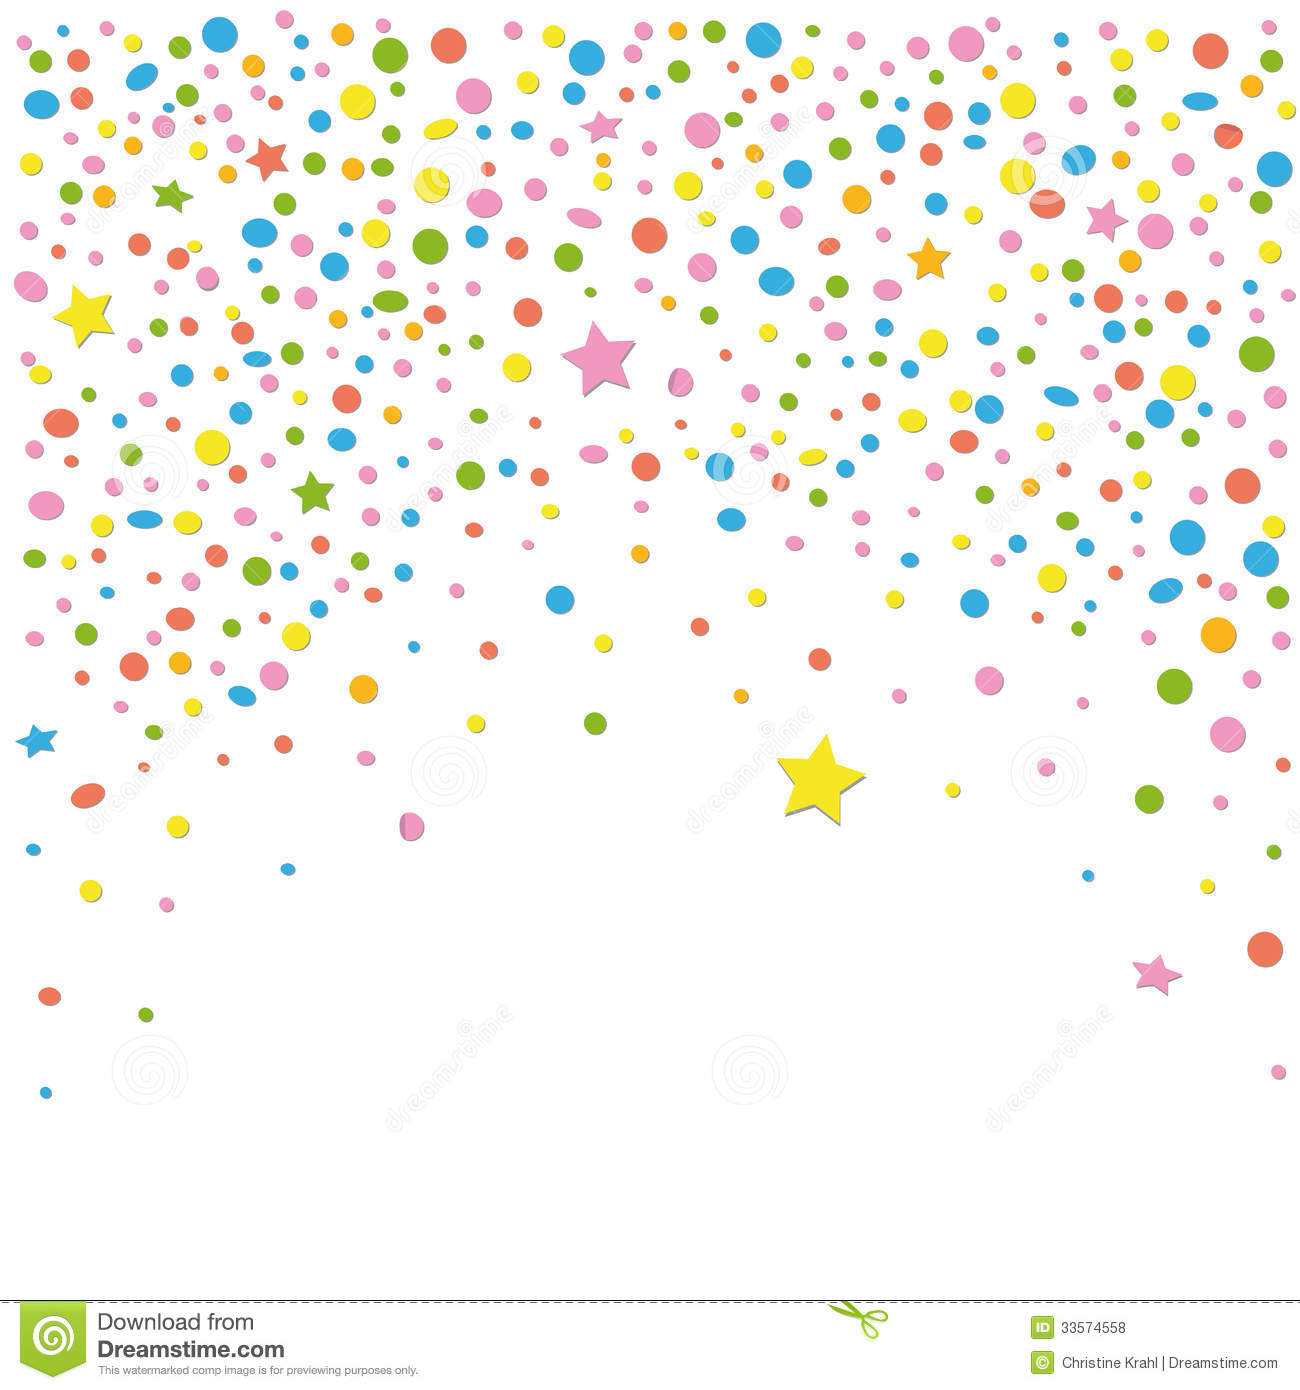 Confetti clipart vector free banner royalty free library 63+ Confetti Clipart Free   ClipartLook banner royalty free library